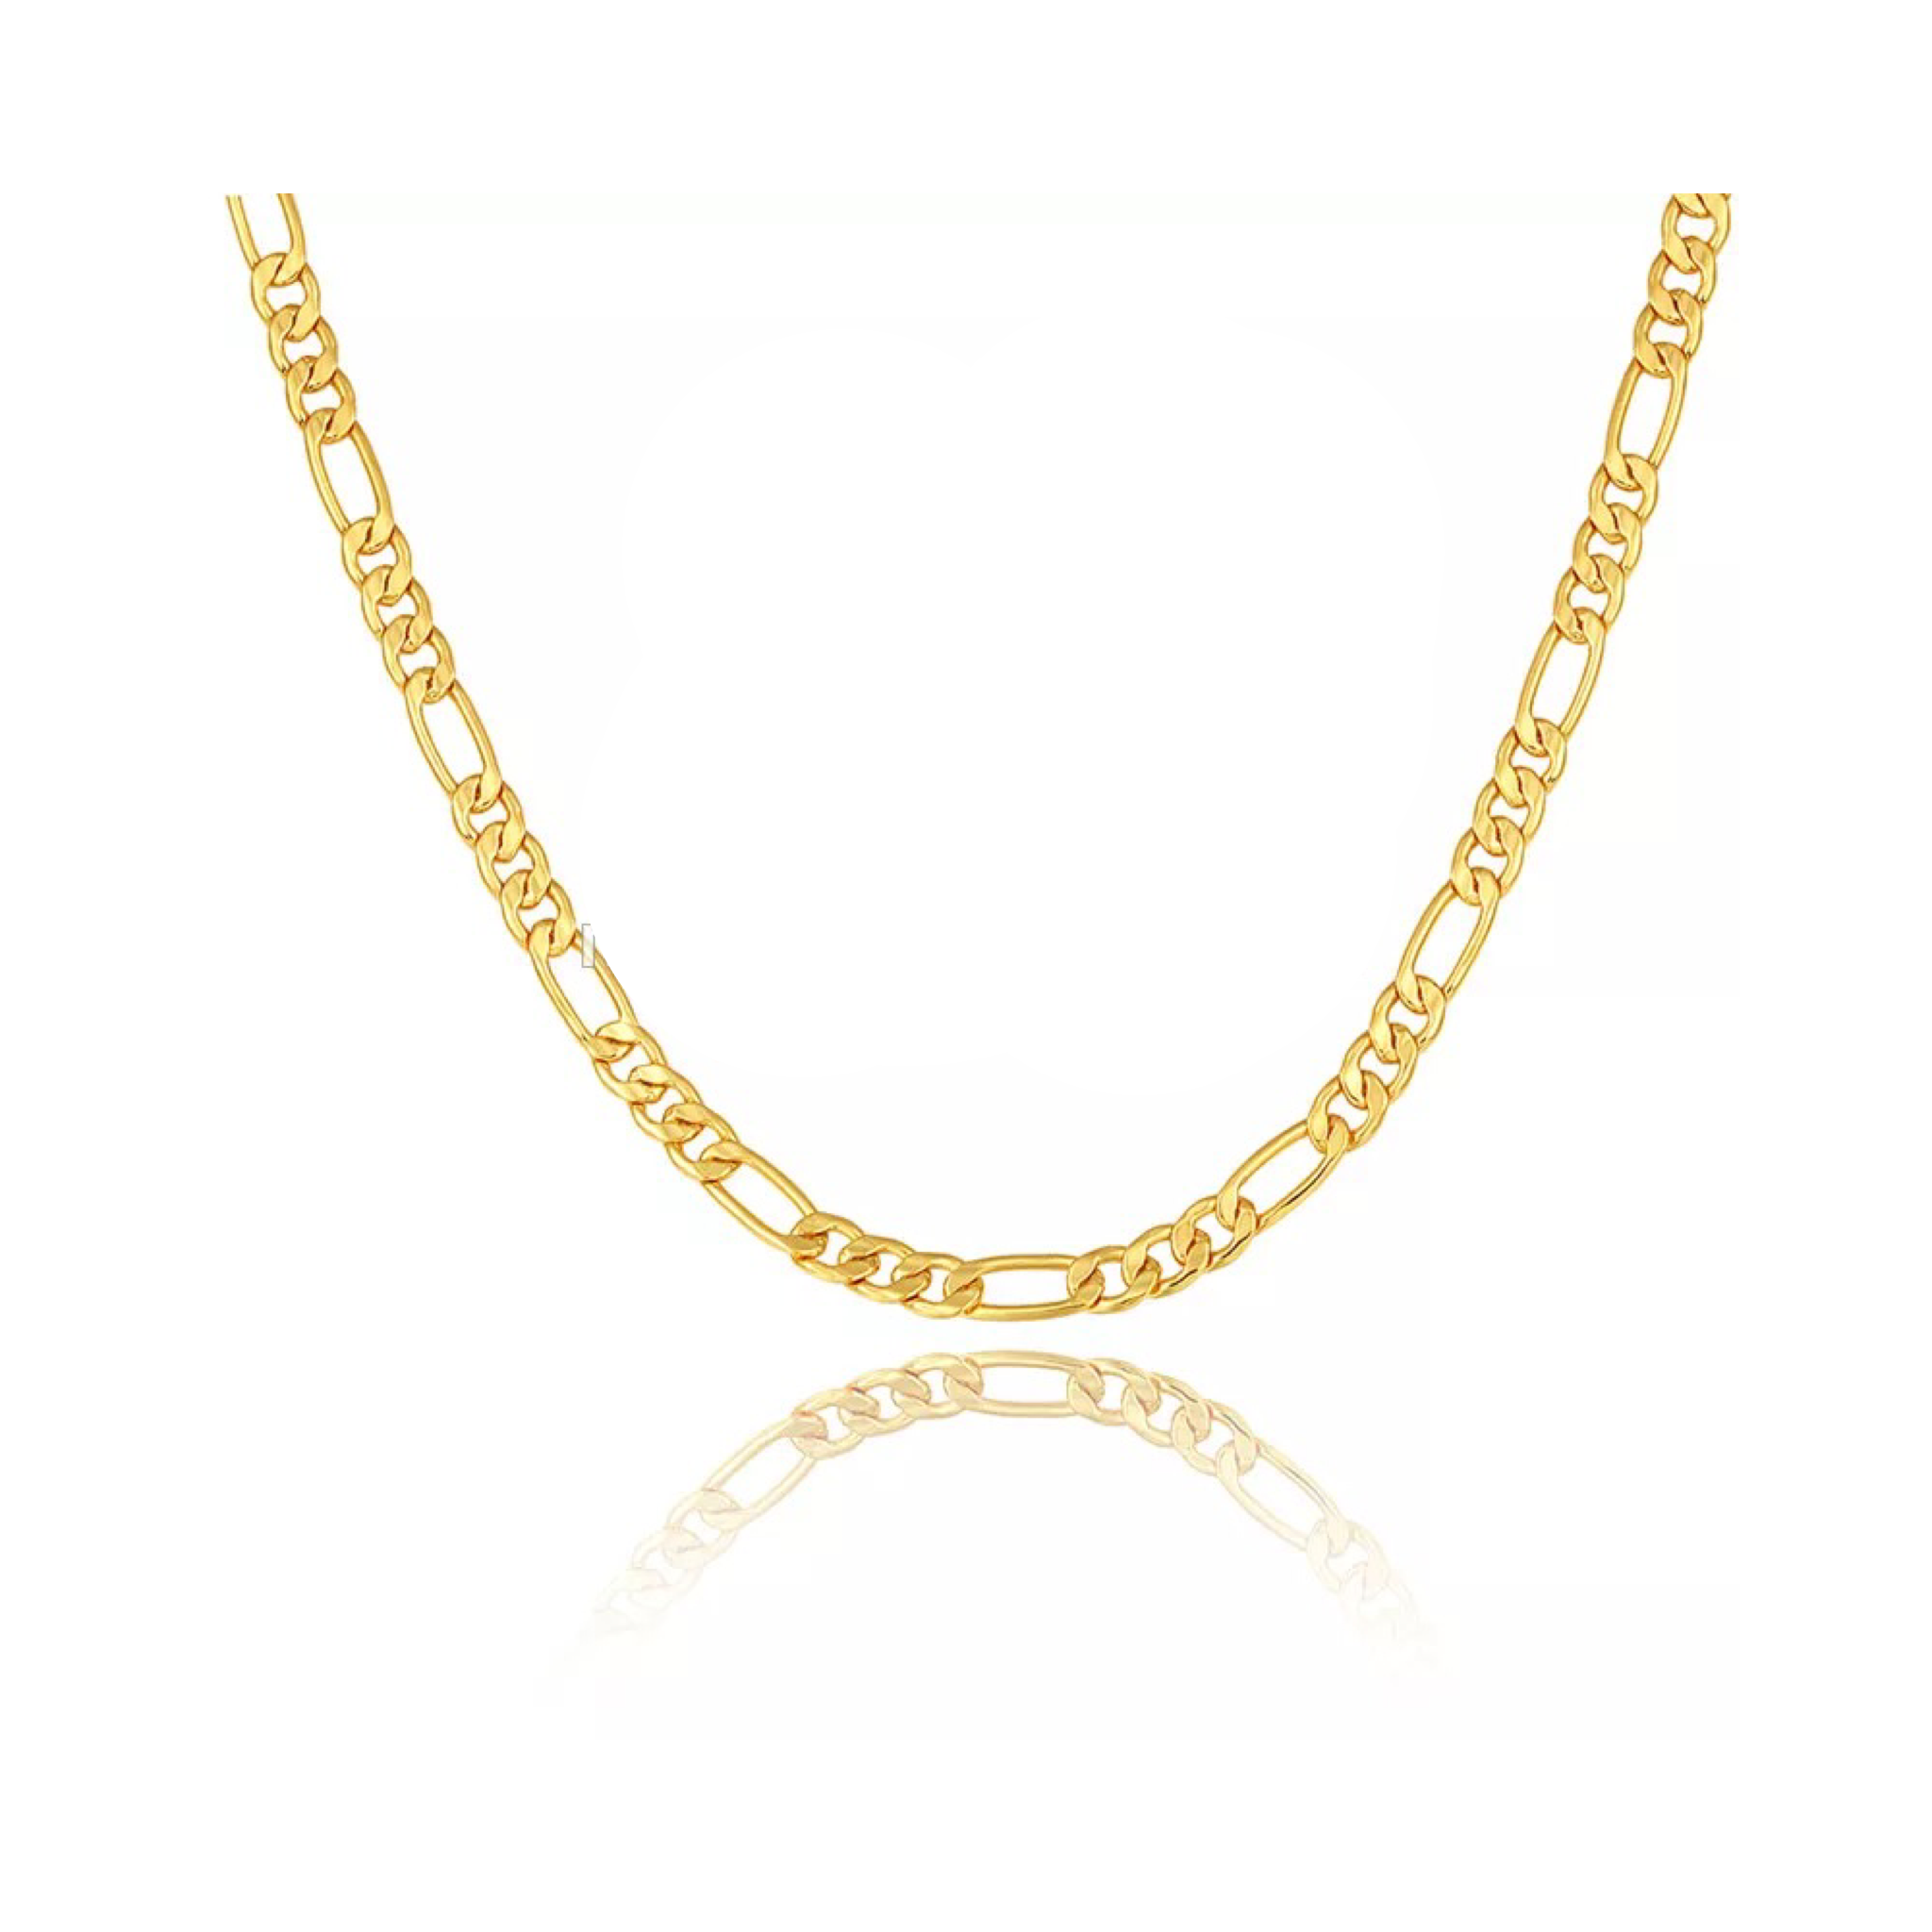 Innysfine Figaro Chain Necklace - Innysthebrand Jewellery